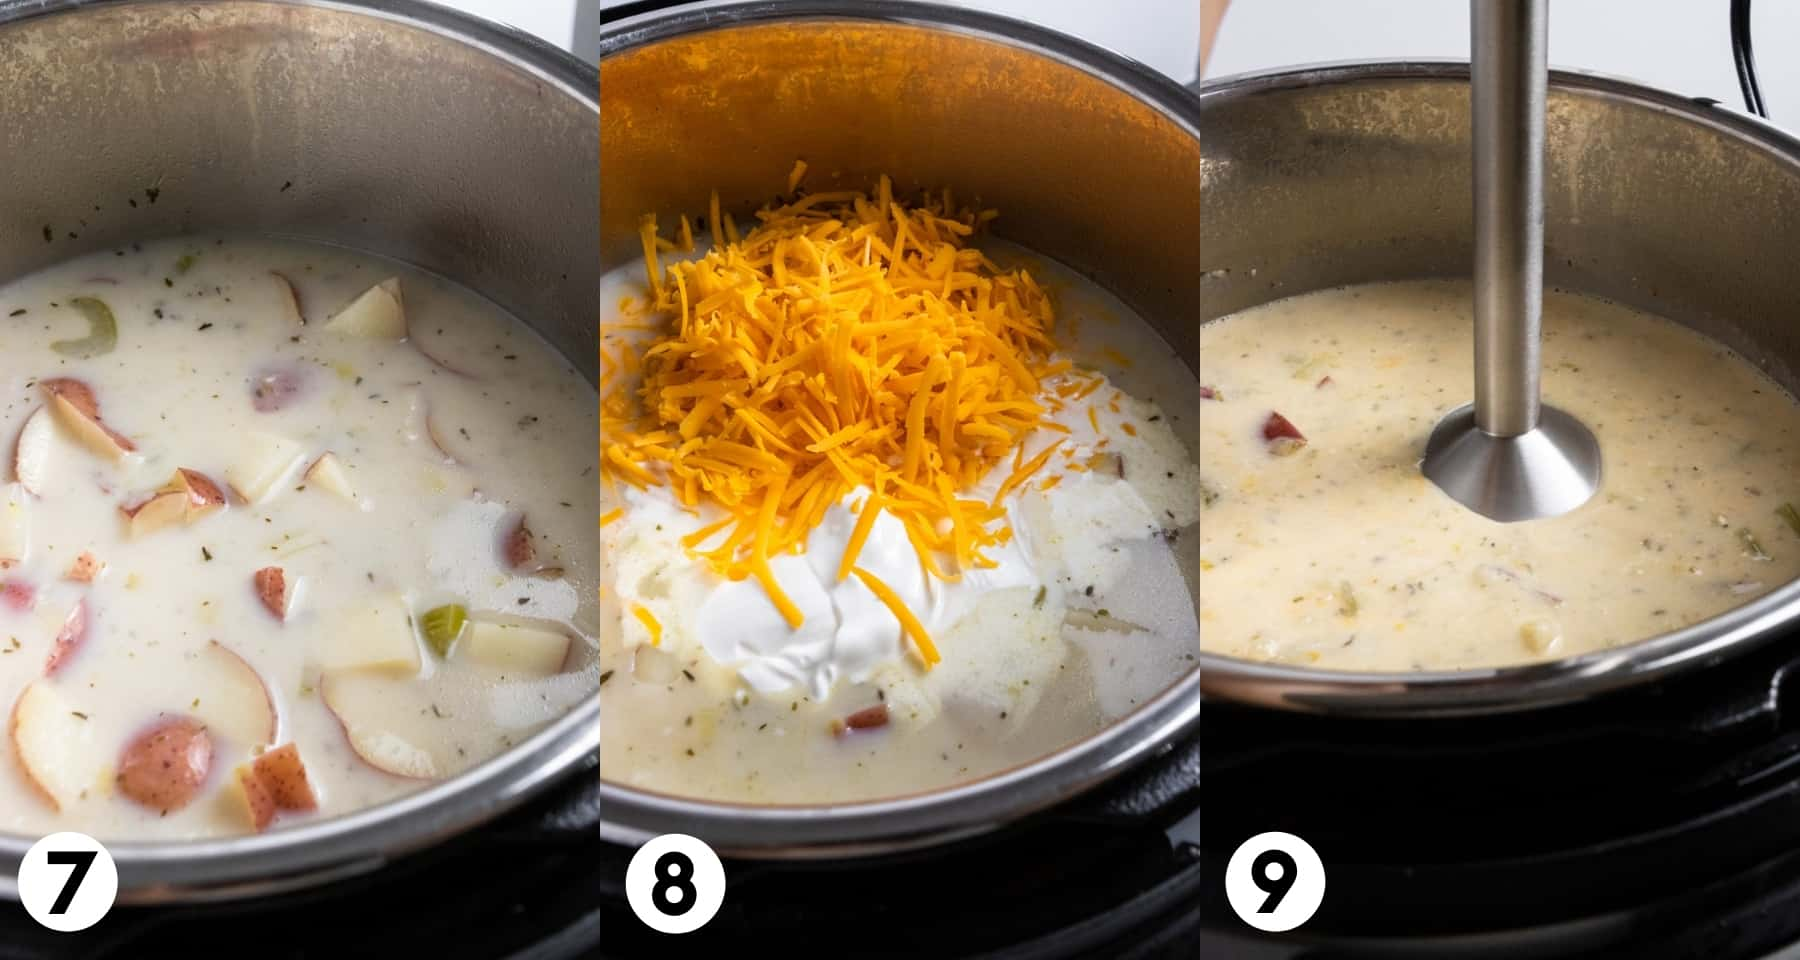 Cream added to soup pan with cheese and other ingredients.